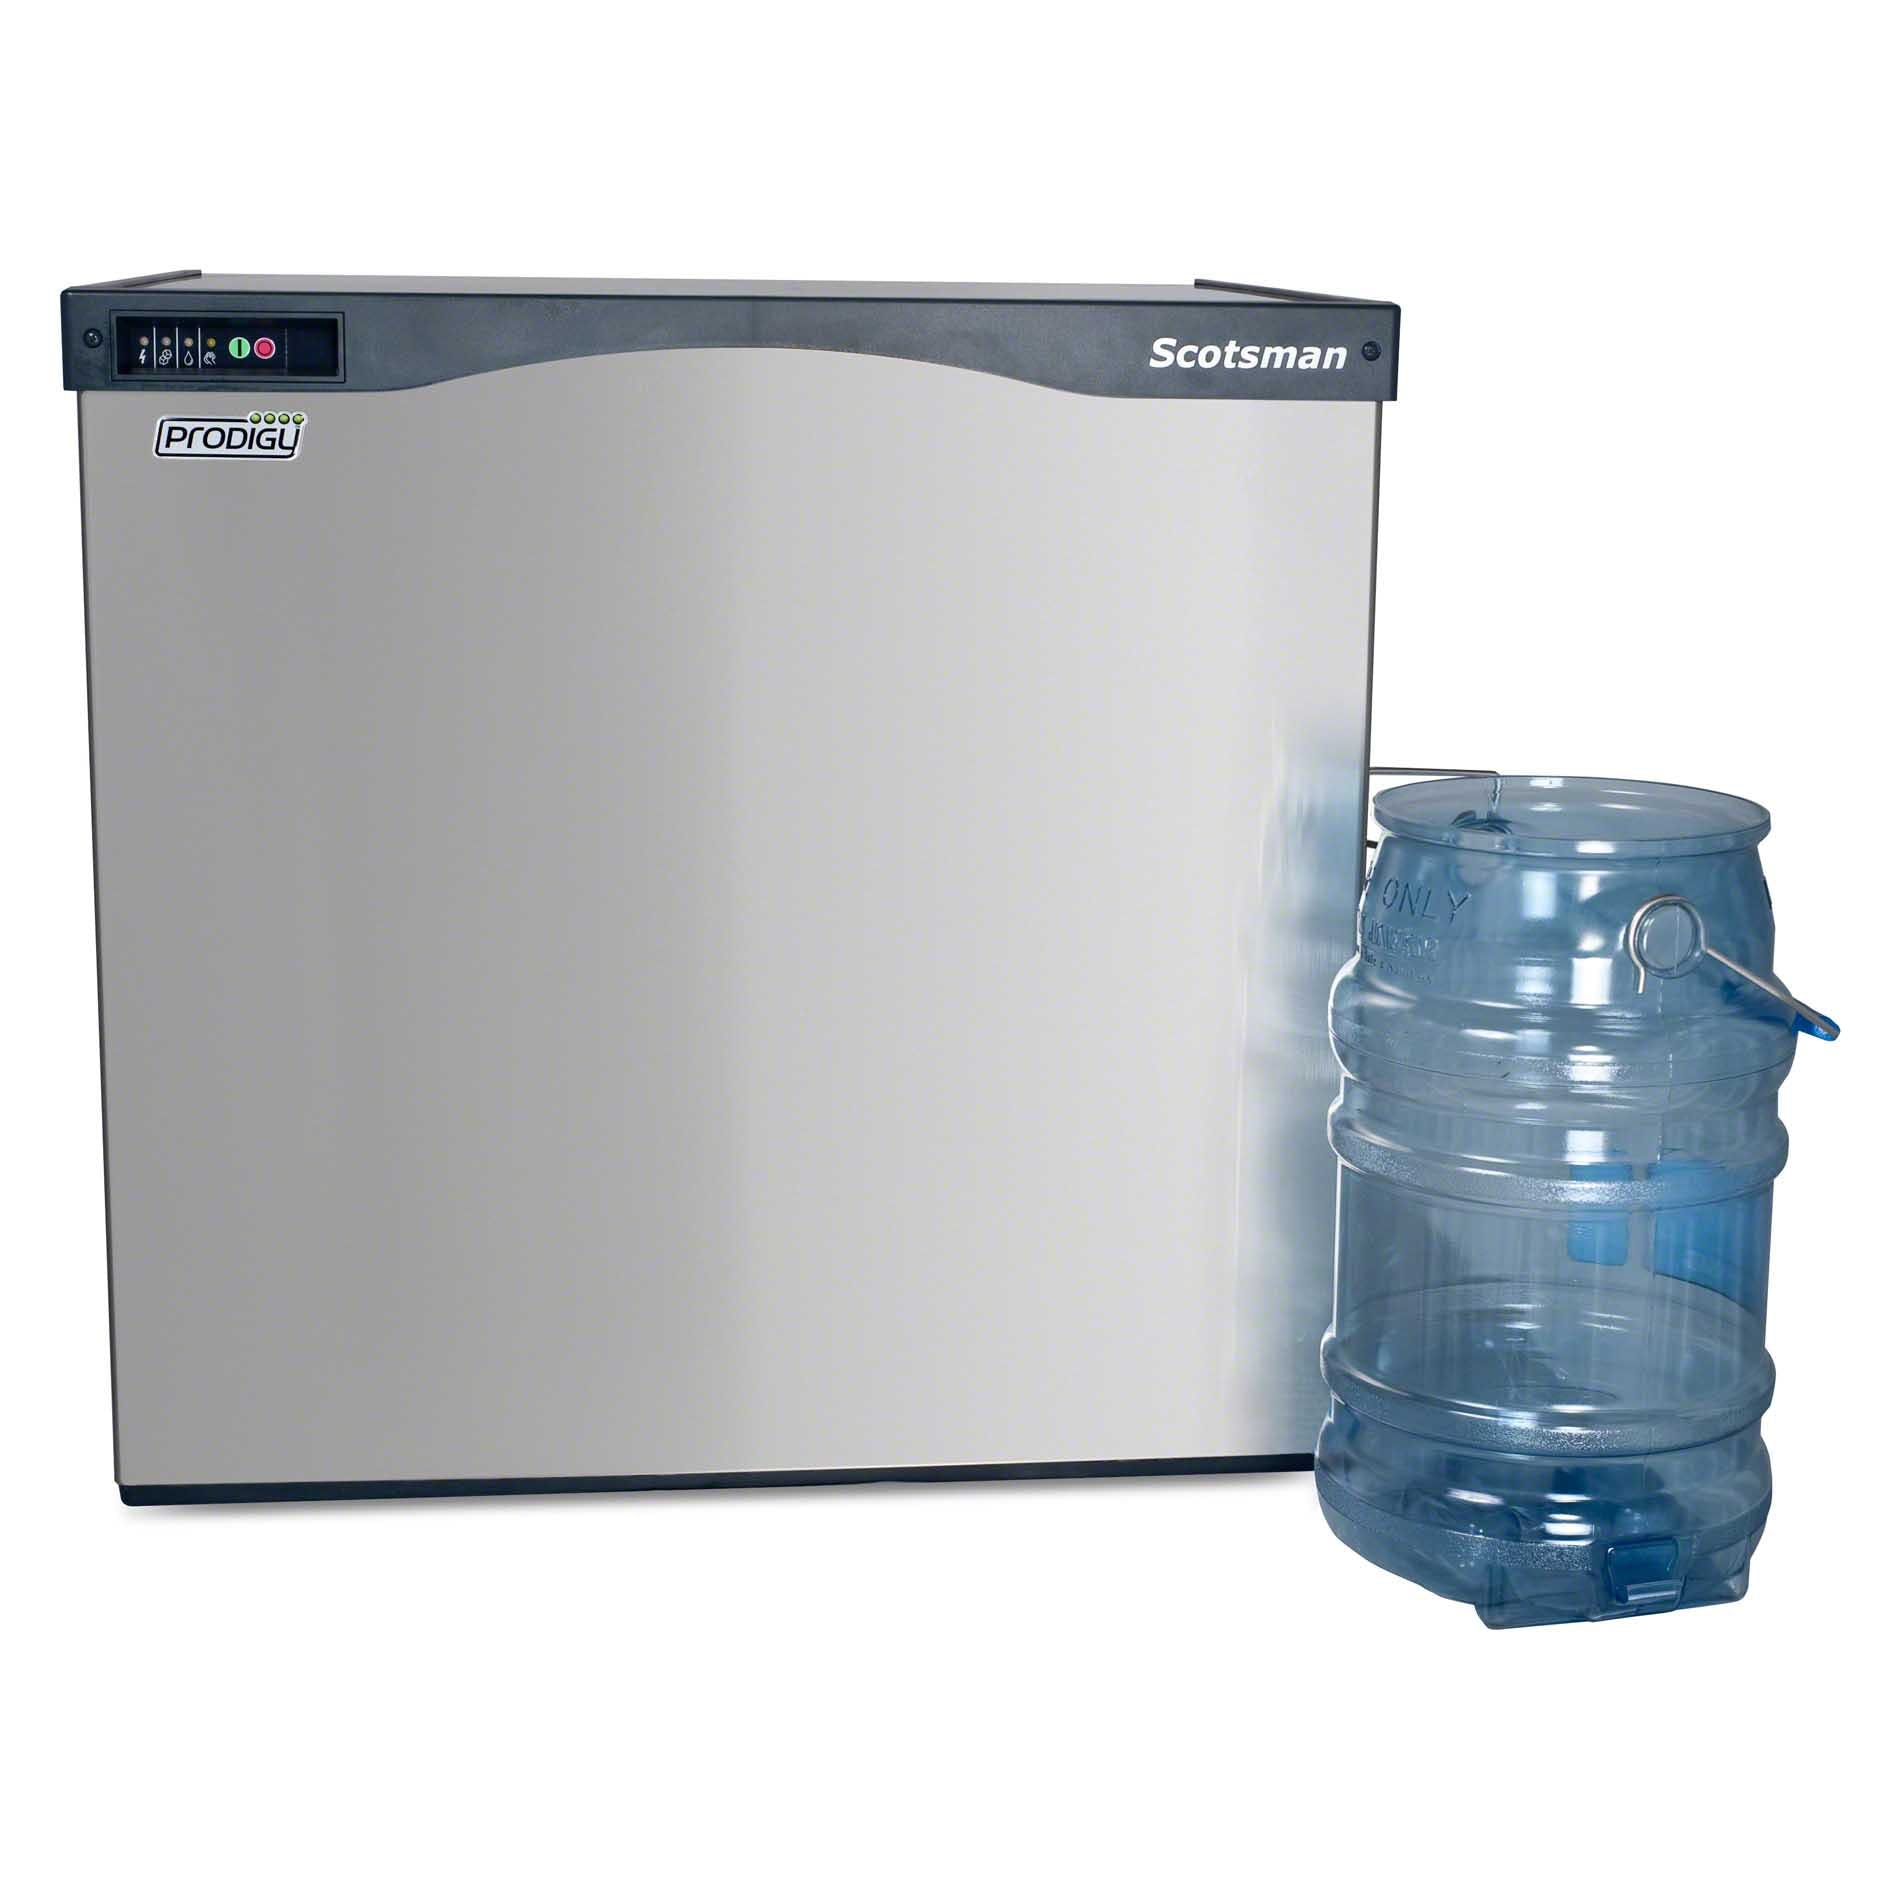 Scotsman - C0830MW-32A 924 lb Full Size Cube Ice Machine - Prodigy Series Ice machine sold by Food Service Warehouse